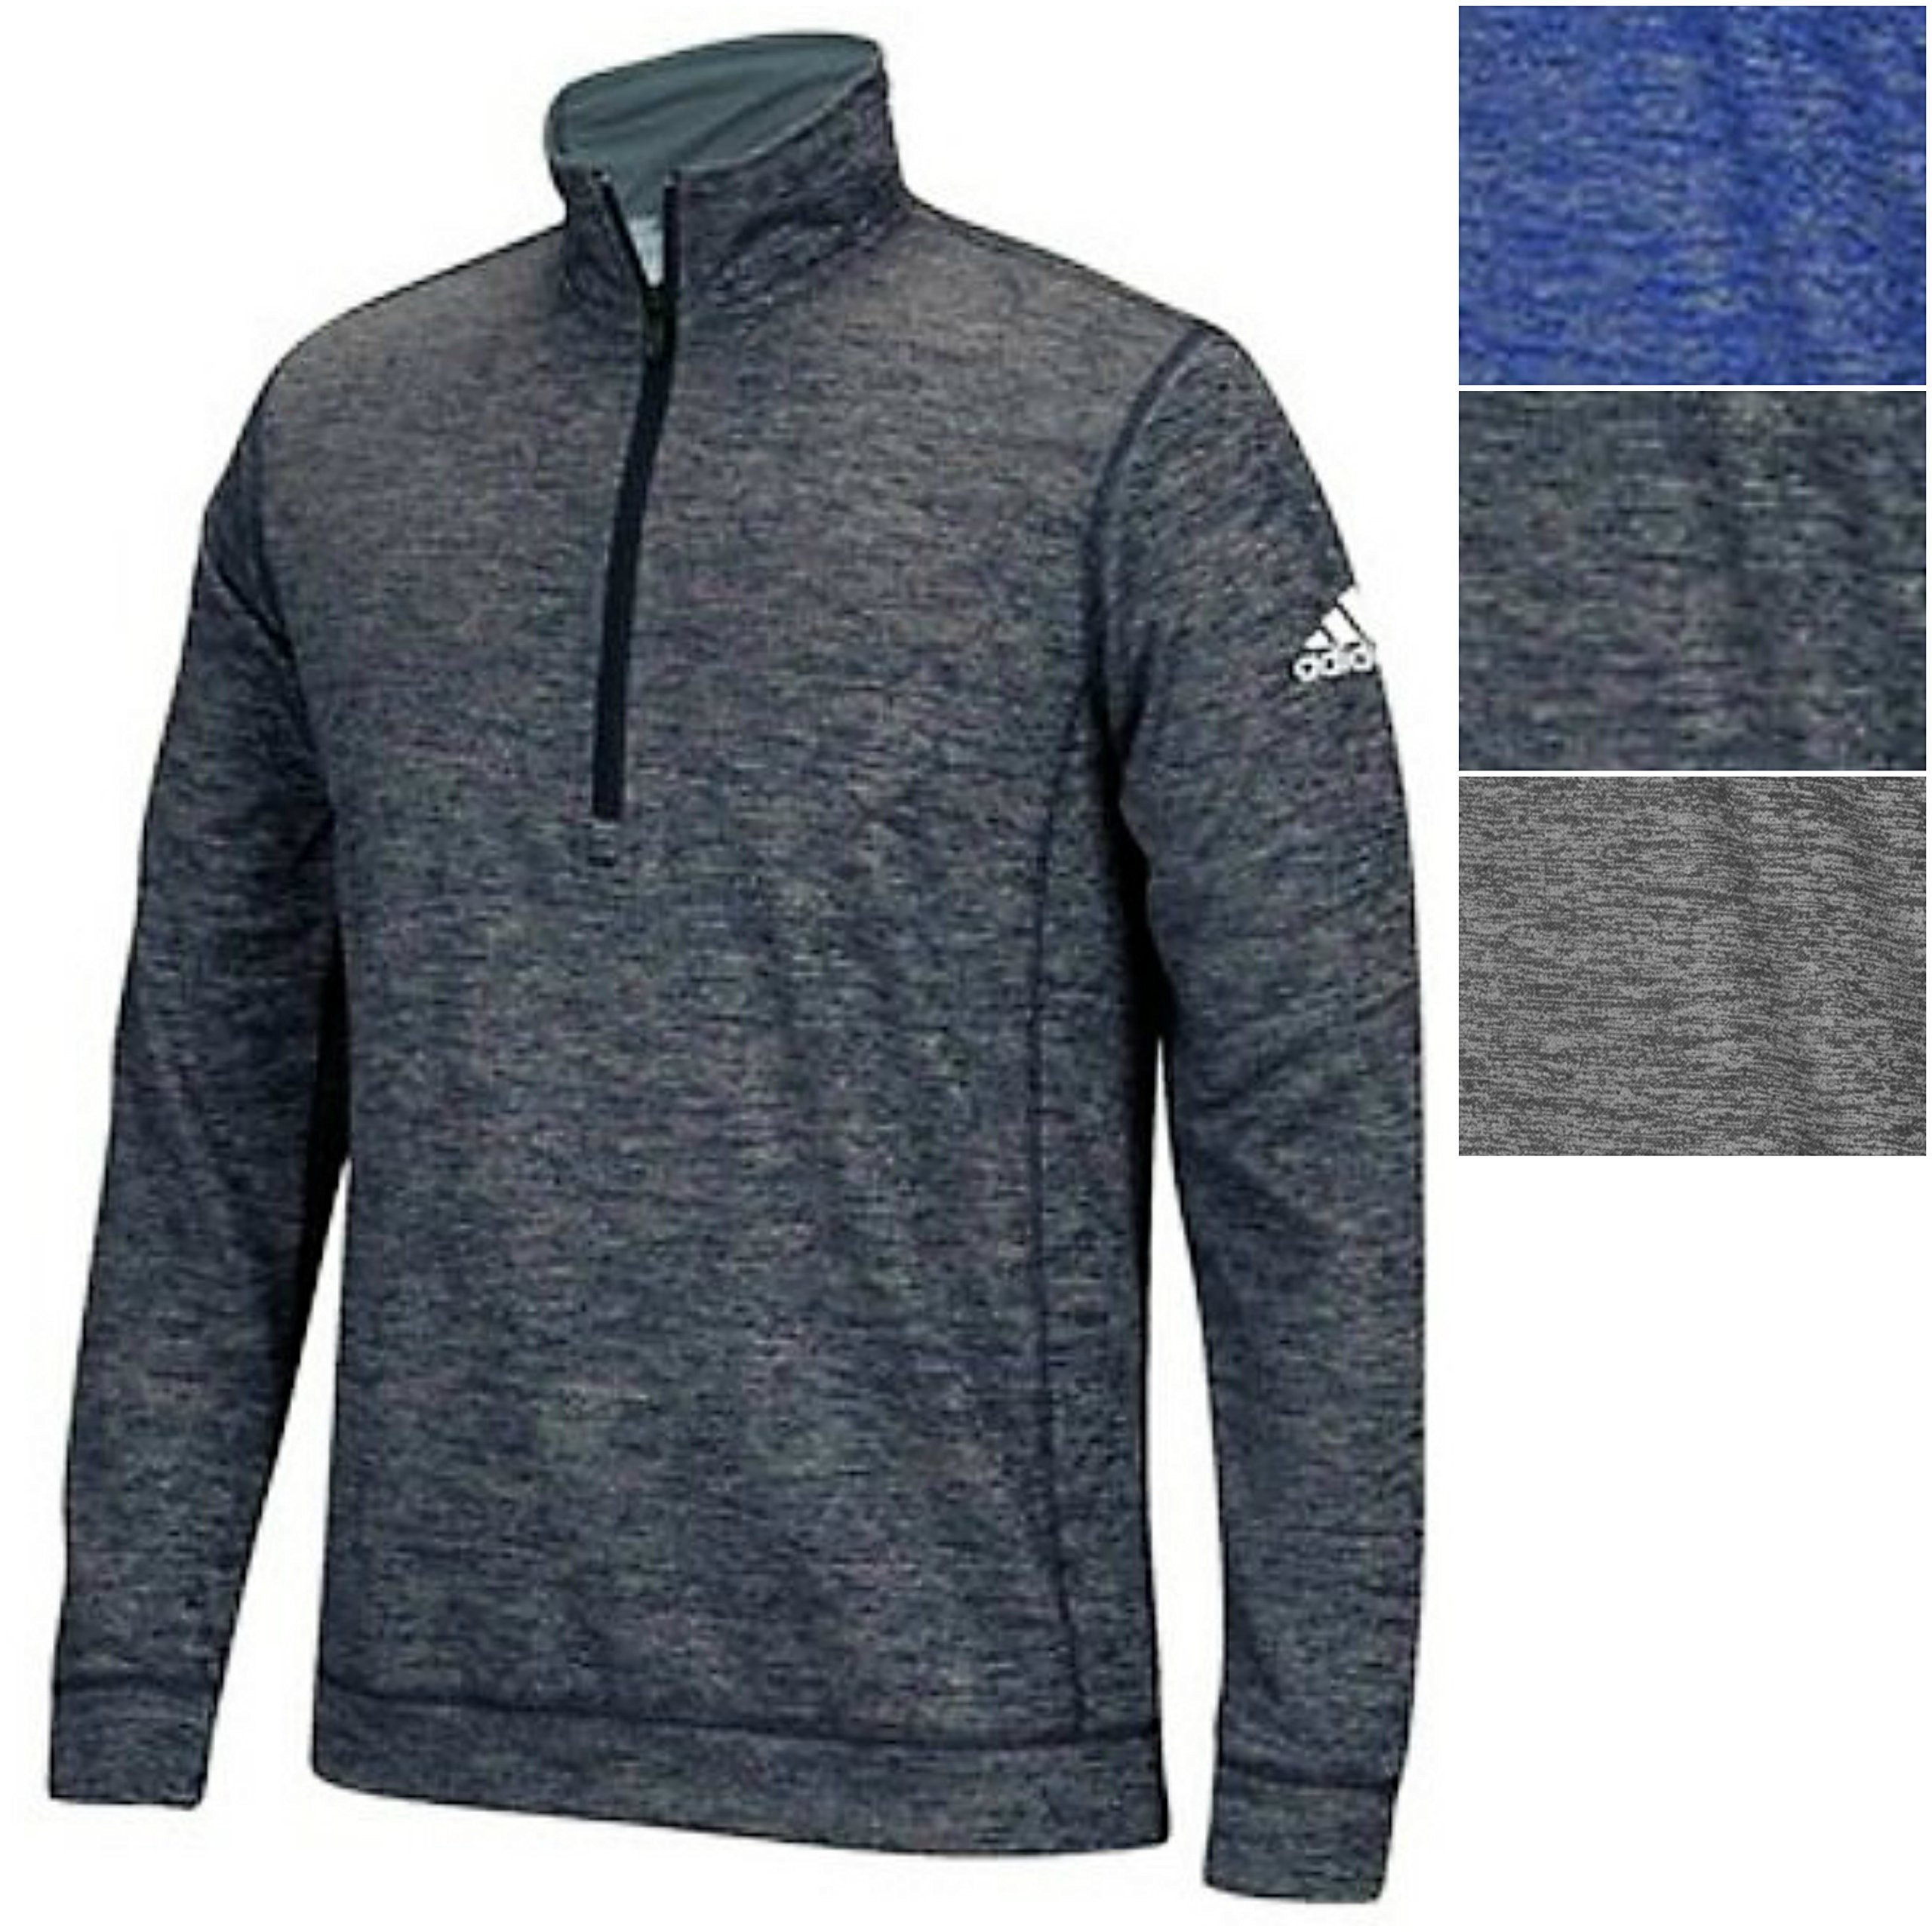 adidas Mens Climawarm Team Issue 1/4 Zip Long Sleeve, Dark Grey Heathered, X-Large by adidas